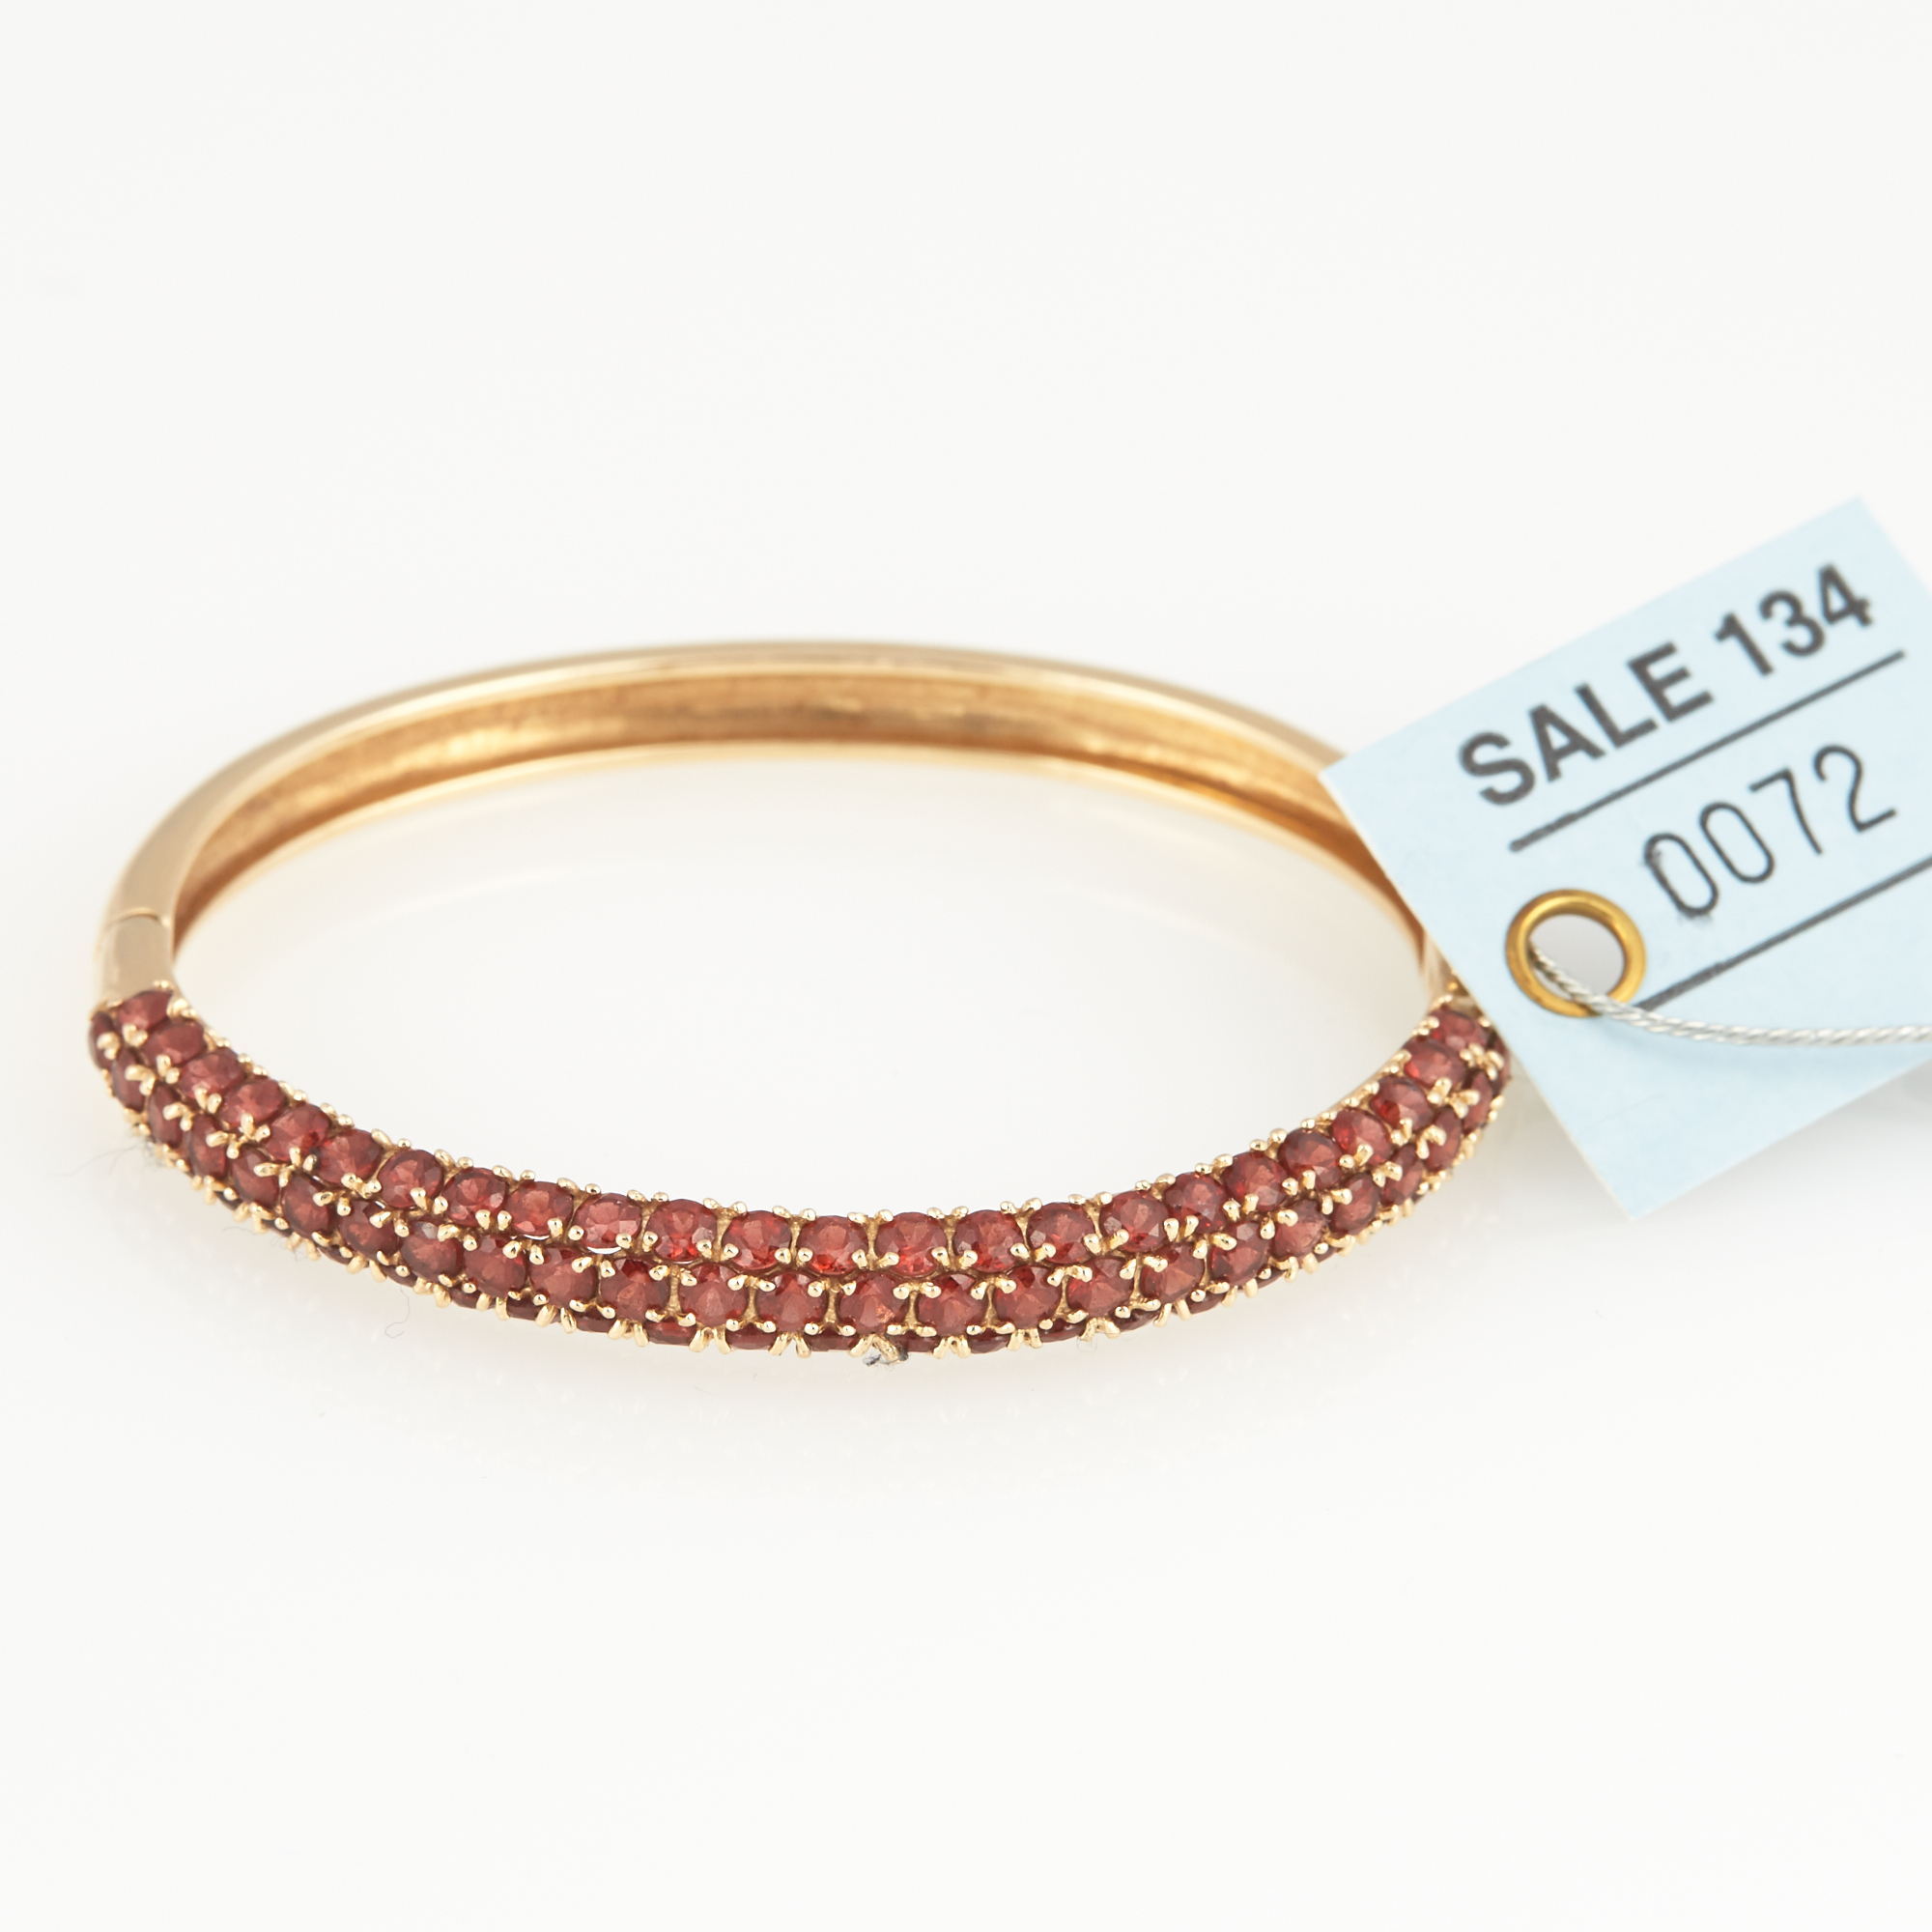 Lot image - Gold and Stone Rigid Bracelet, 14K 11 dwt. all